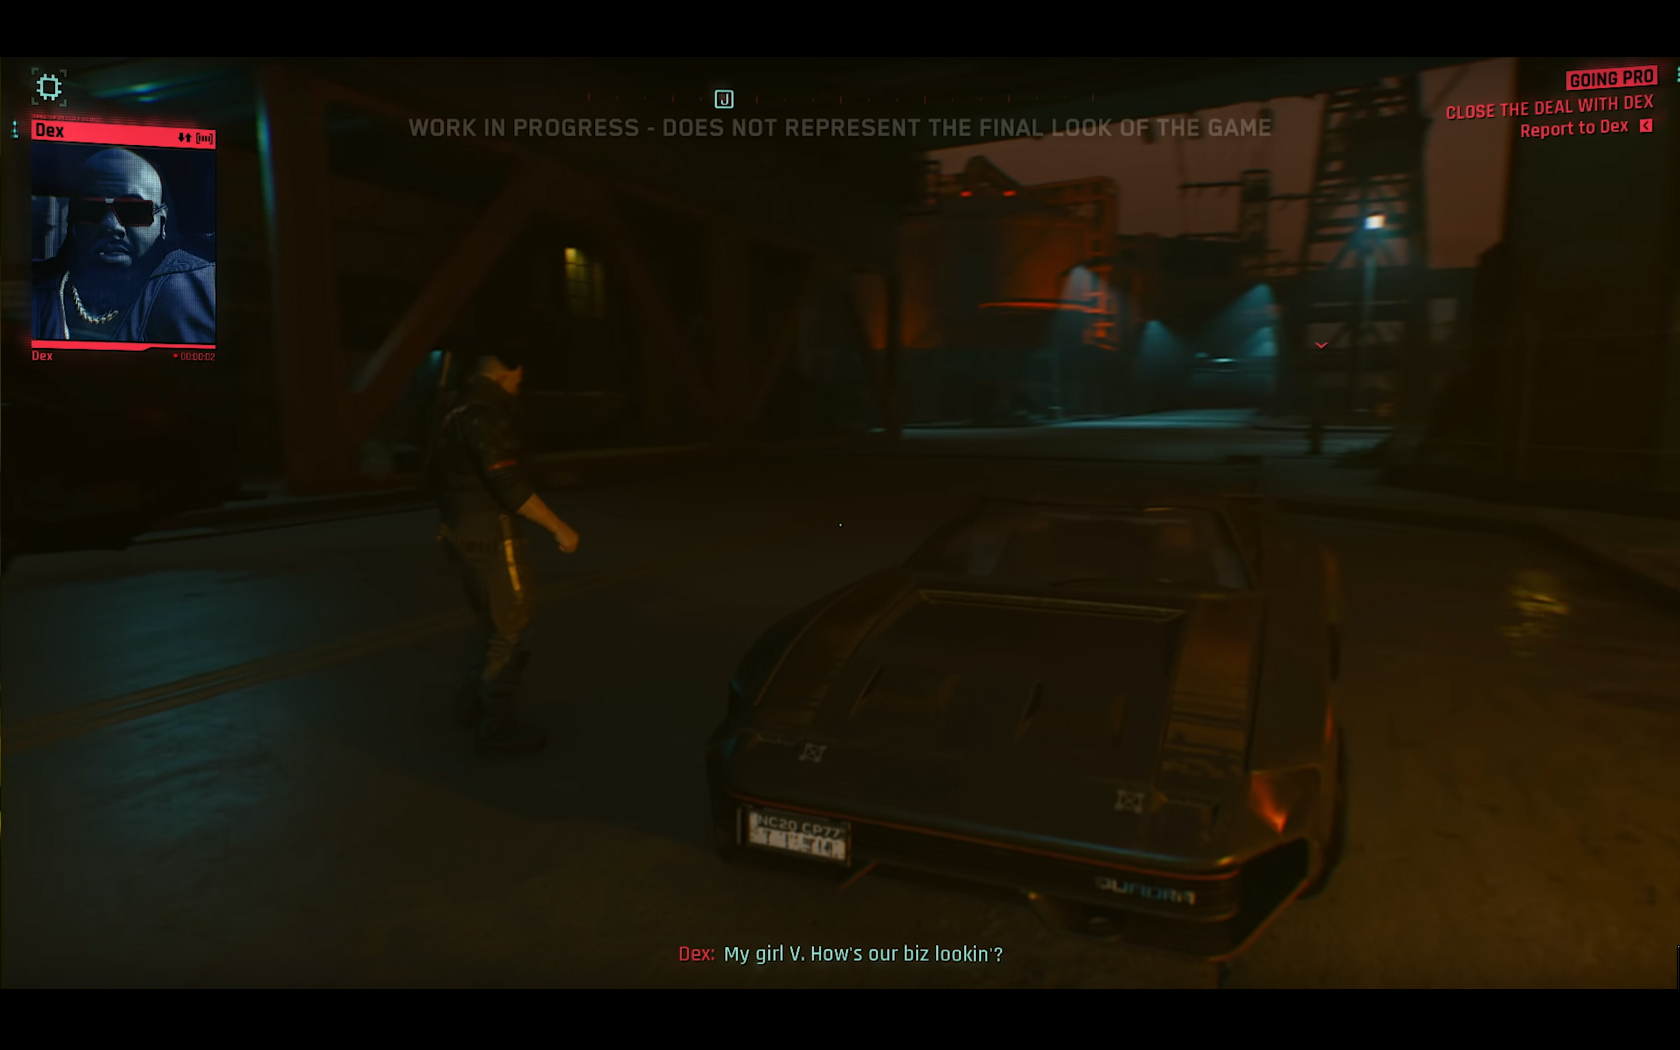 CD Projekt Red - Cyberpunk 2077 - video reveal gameplay - 2018 - screen - sports car QUADRA - front night